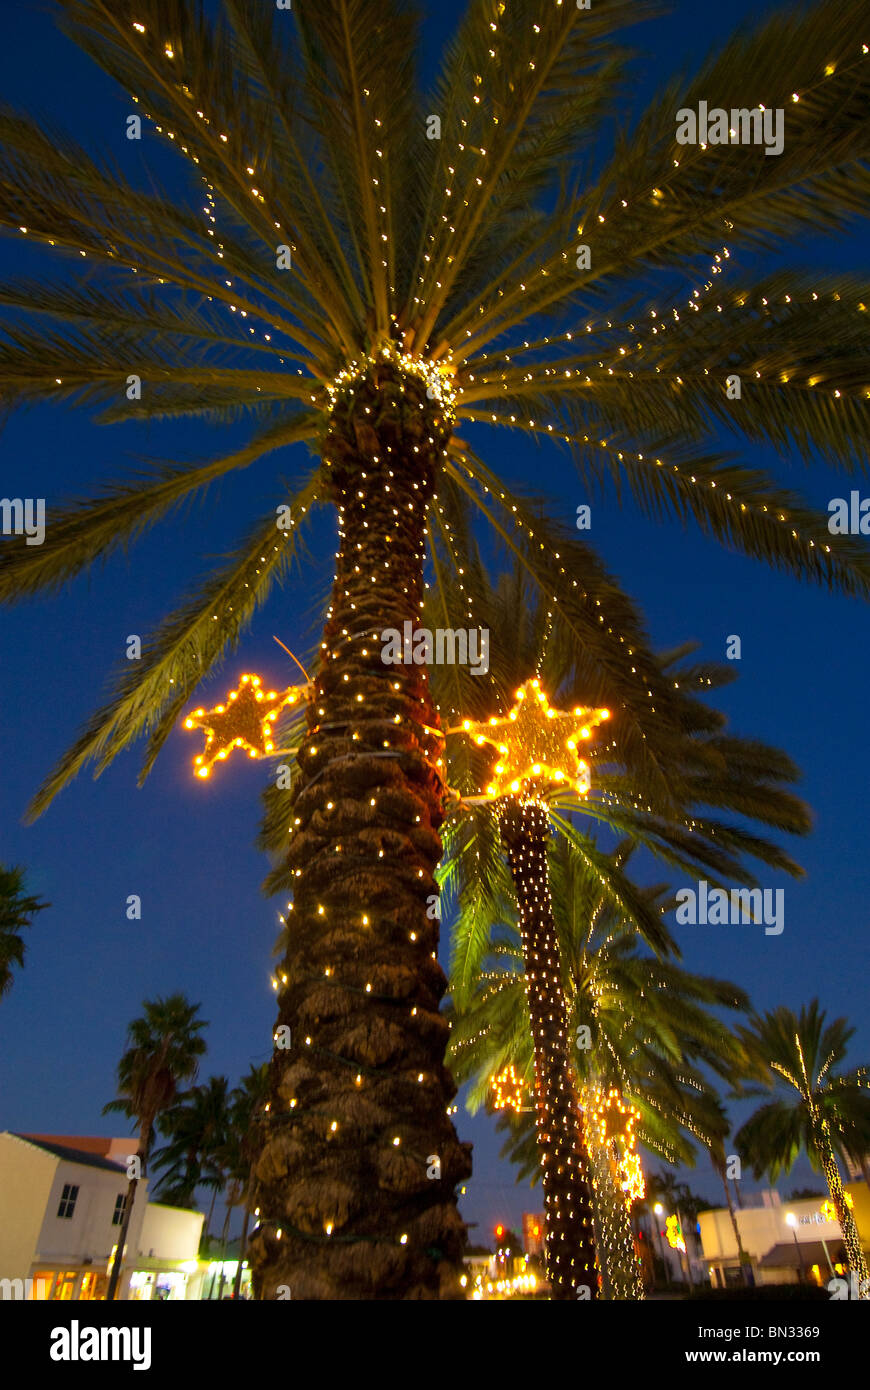 palm trees decorated with christmas lights in the normandy isle neighborhood in miami beach florida